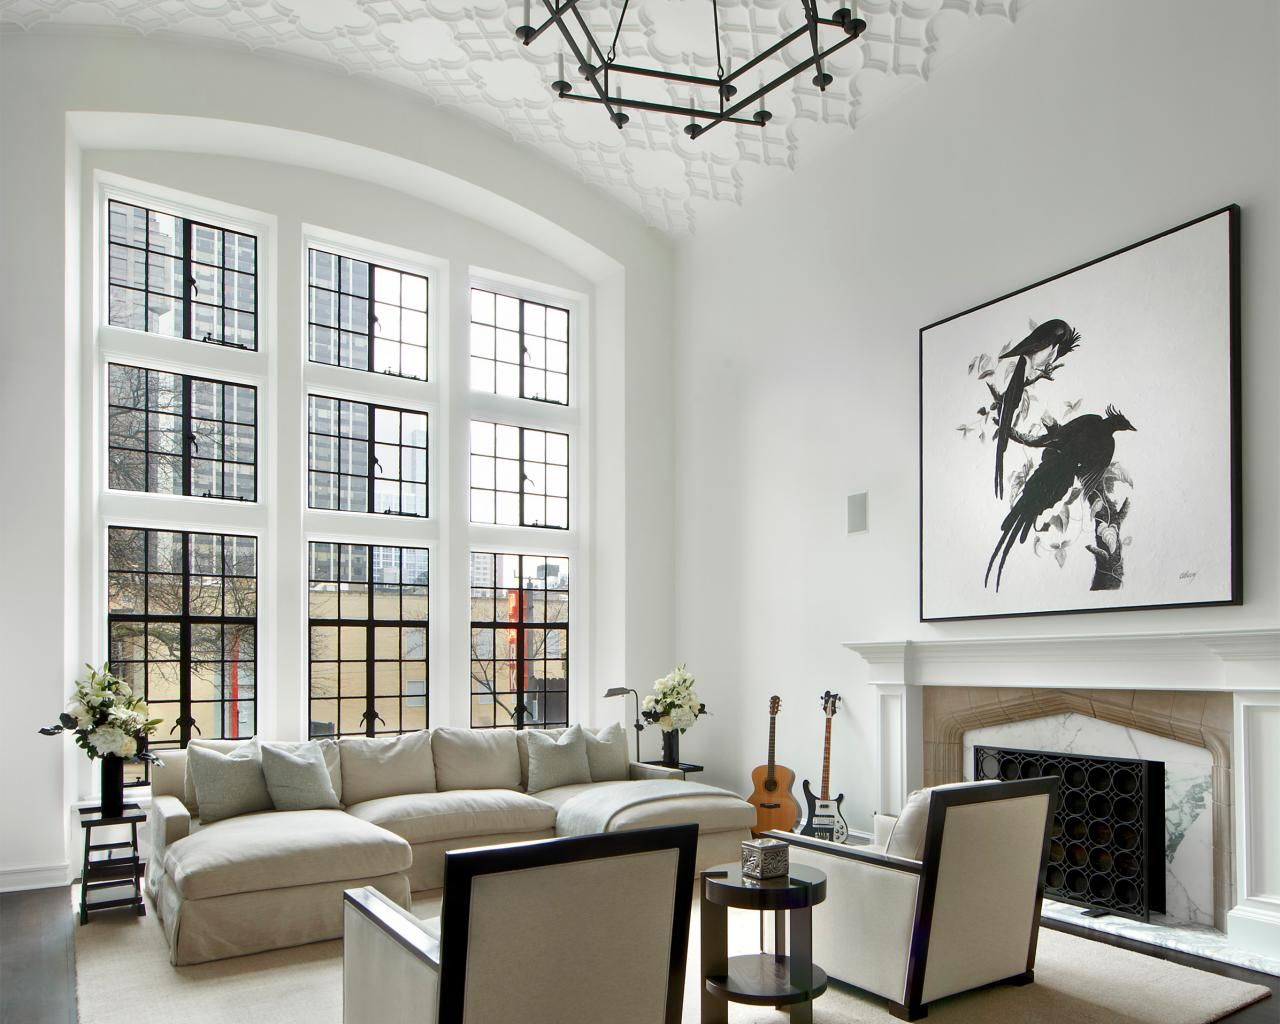 Chic Black And White Contemporary Apartment In The City Living Room Decor Apartment Interior Design Living Room Apartment Living Room #white #contemporary #living #room